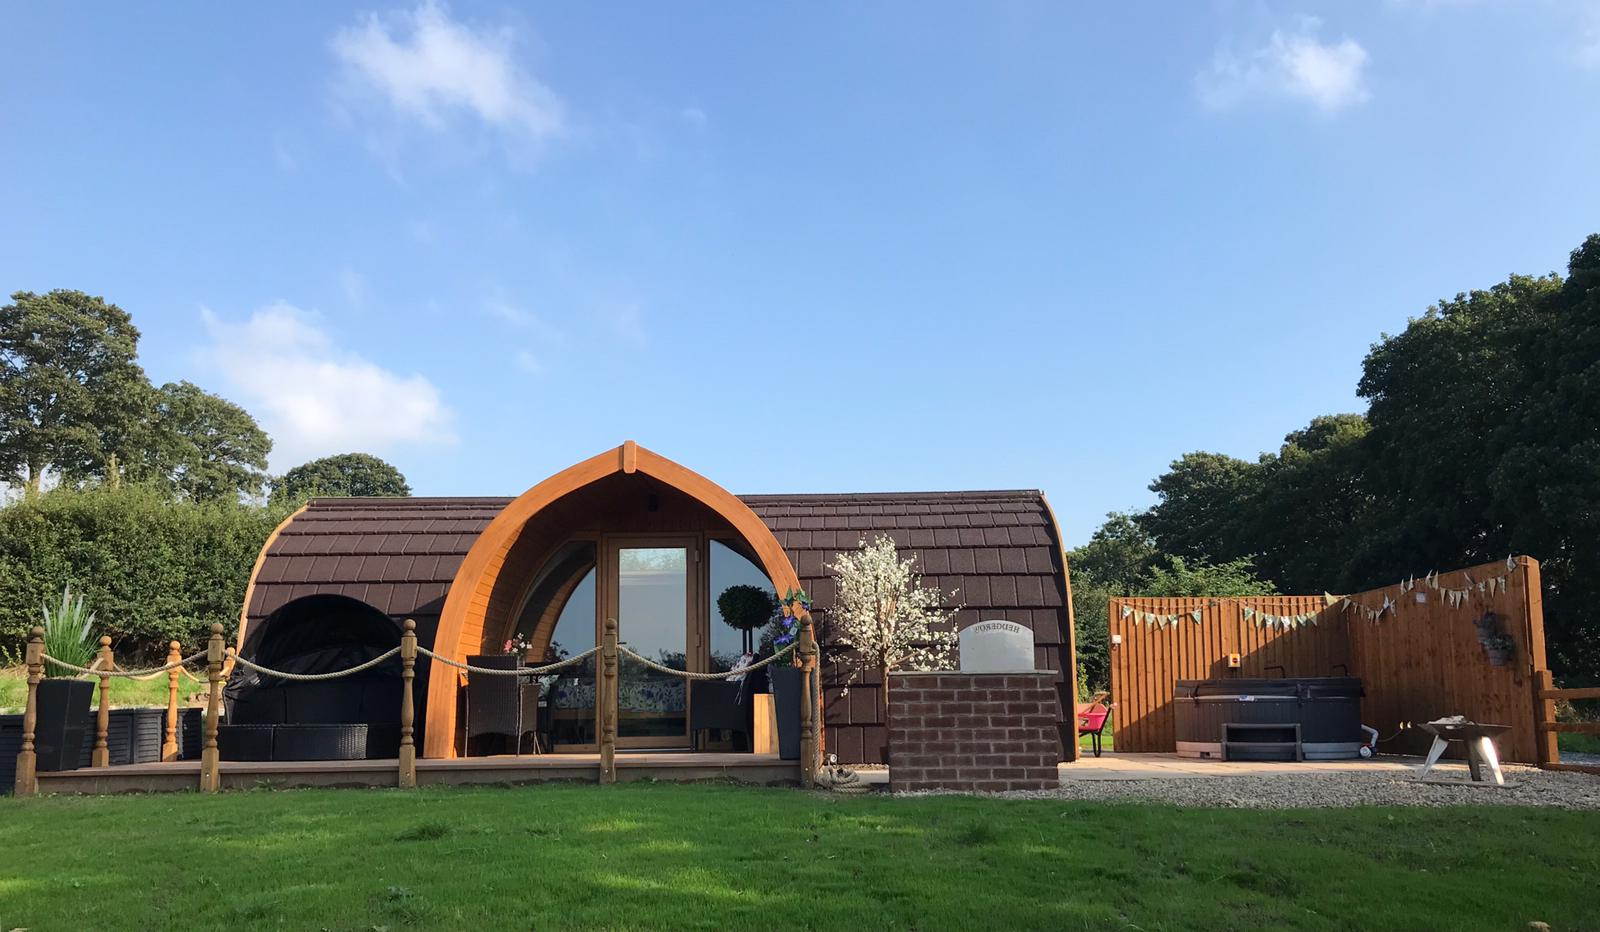 Campsites in North West England holidays at I Love This Campsite